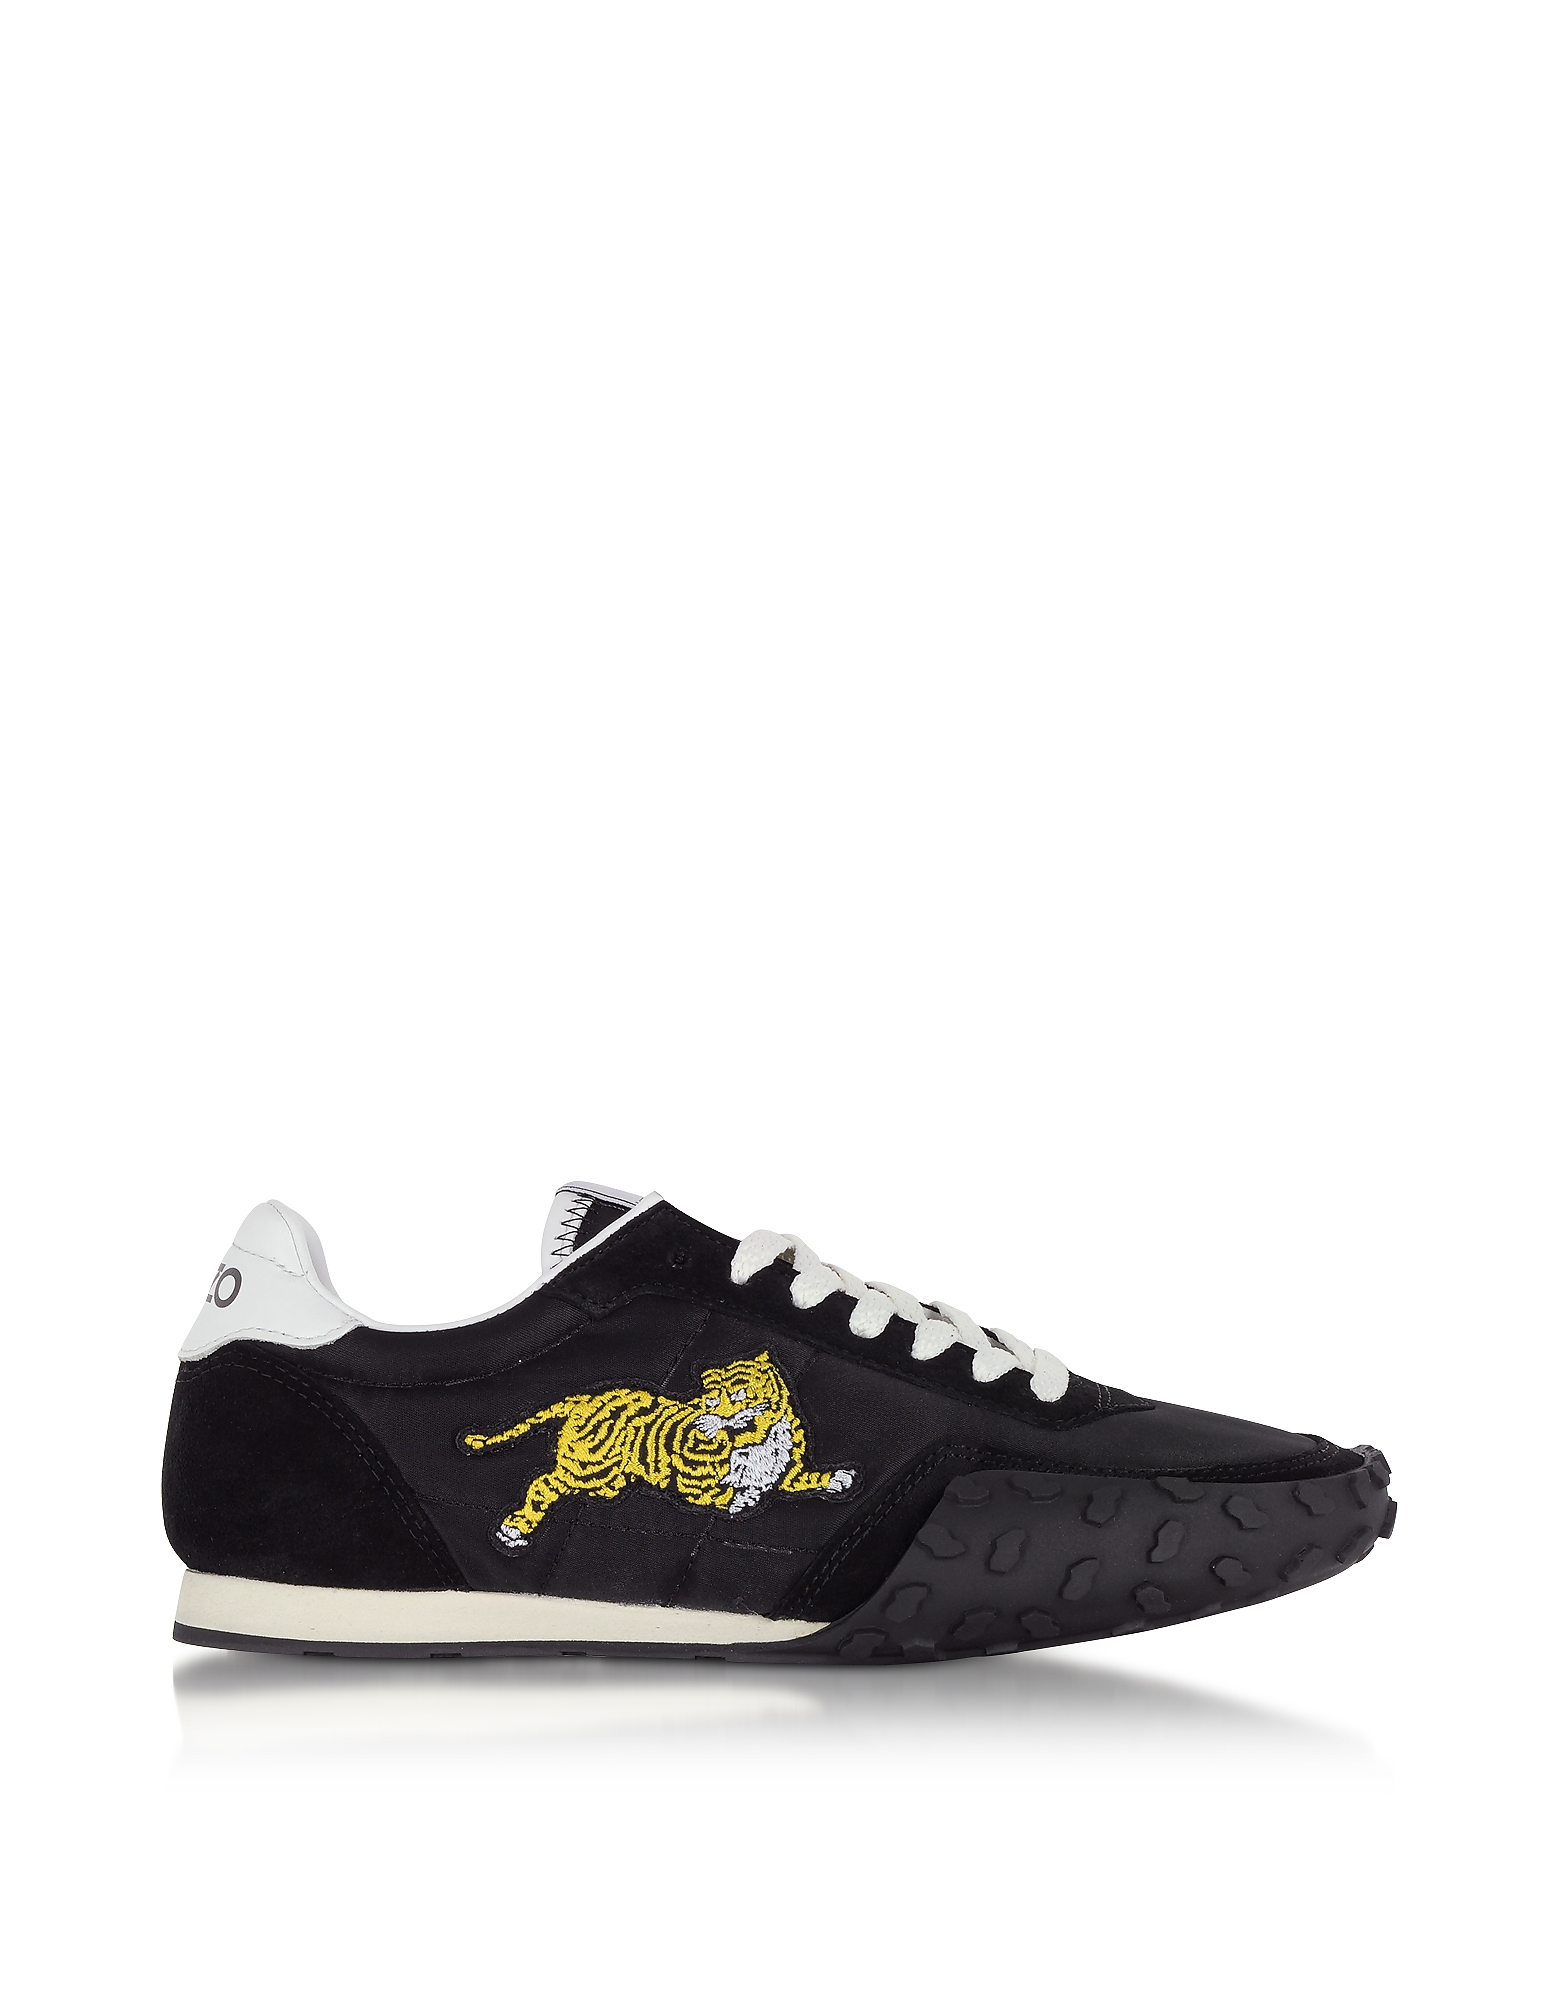 Kenzo Shoes, Move Black Nylon Memento Sneakers